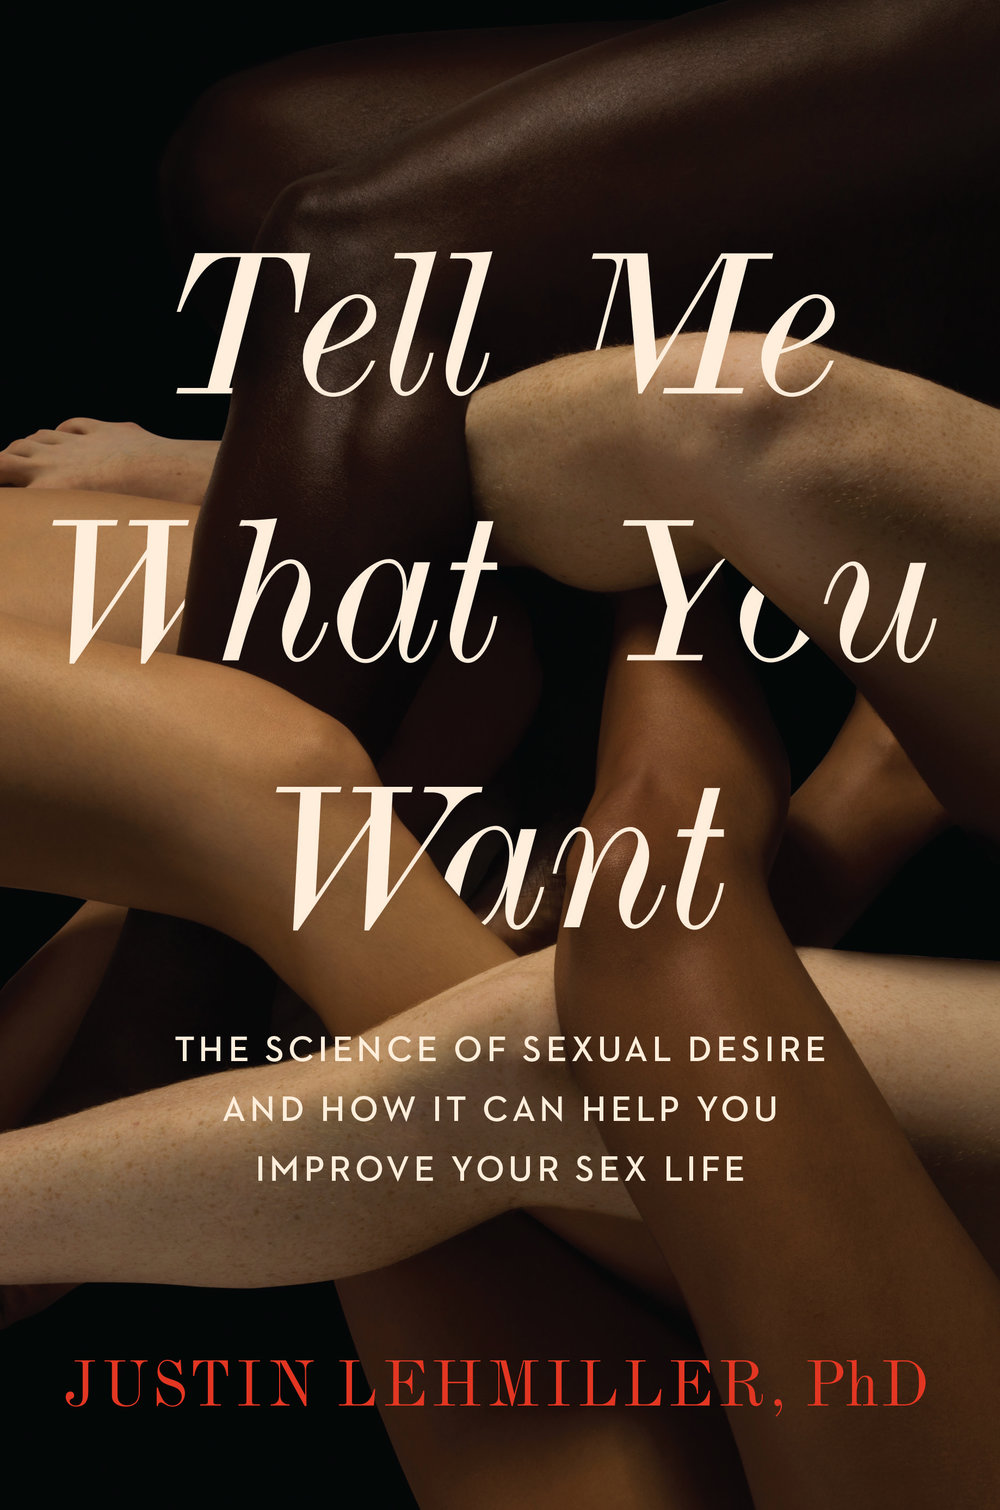 The largest survey of sexual fantasies in America--and what your sexual desires say about you - AVAILABLE FROM DA CAPO PRESS.CLICK HERE TO ORDER NOW!AS FEATURED IN THE NEW YORK TIMES, THE WALL STREET JOURNAL, USA TODAY, THE ATLANTIC, CNN, THE CHICAGO TRIBUNE, AND THE BOSTON GLOBE